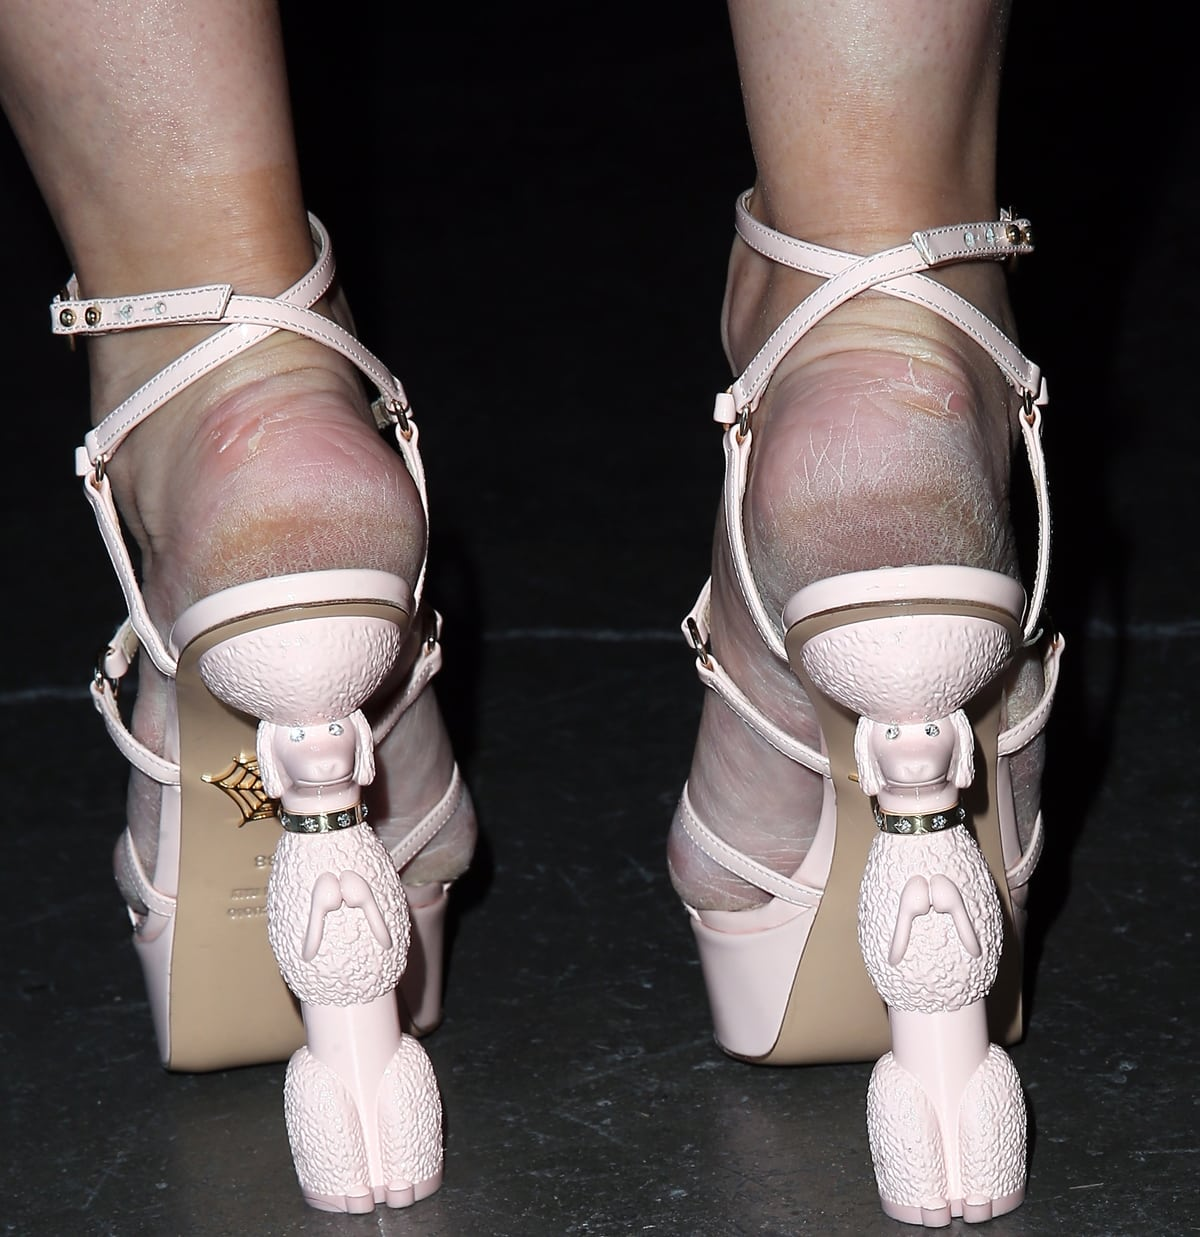 Holly Madison's shockingly dry and cracked feet